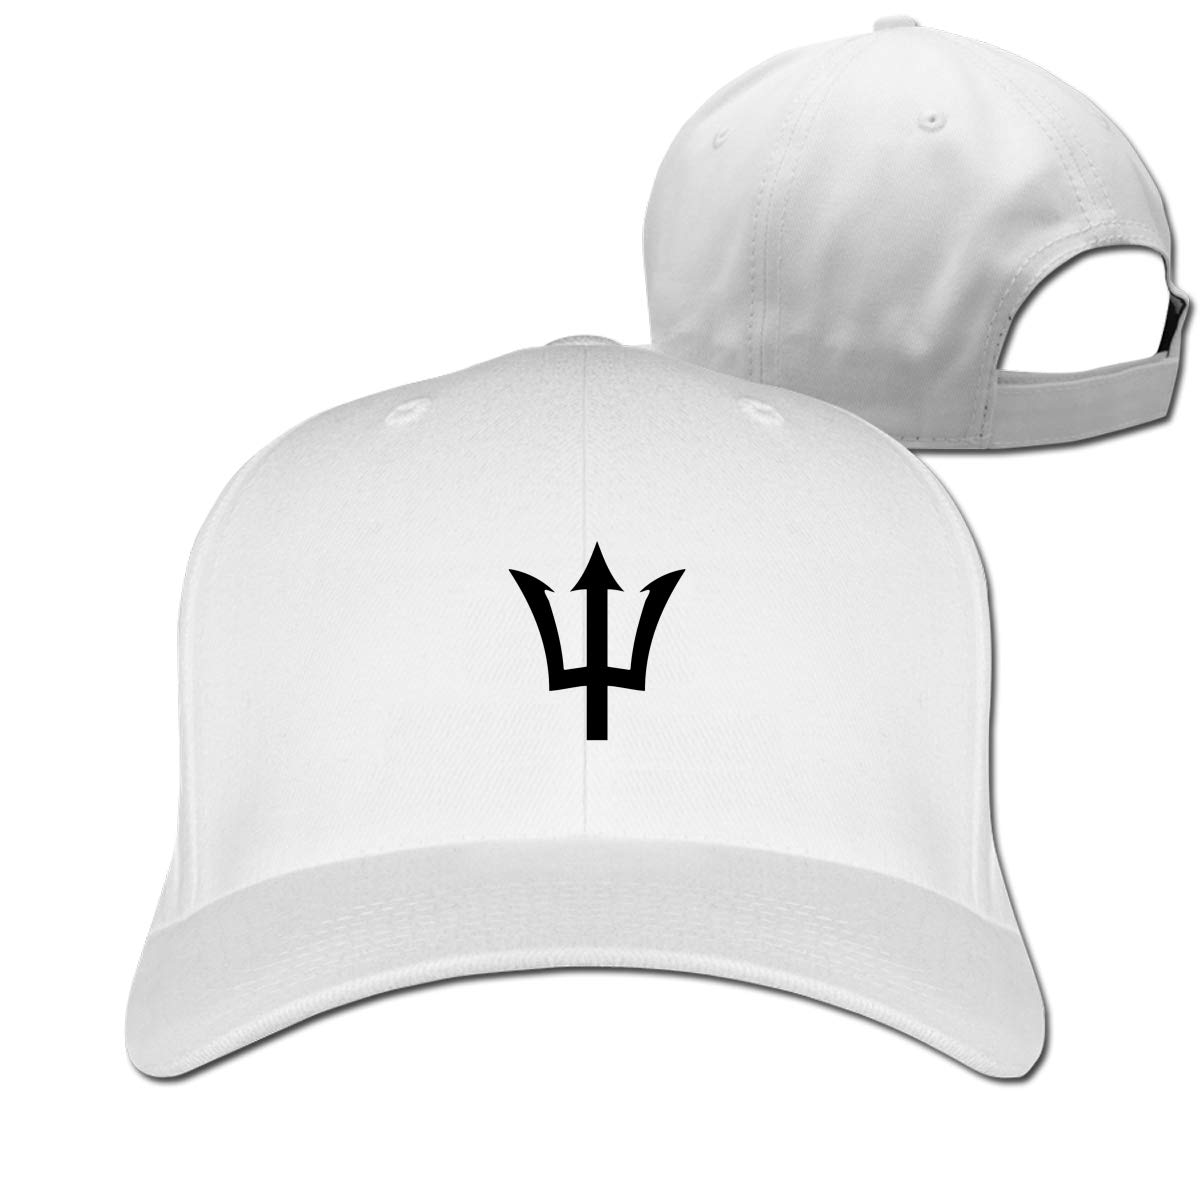 Barbados Flag Fashion Adjustable Cotton Baseball Caps Trucker Driver Hat Outdoor Cap White